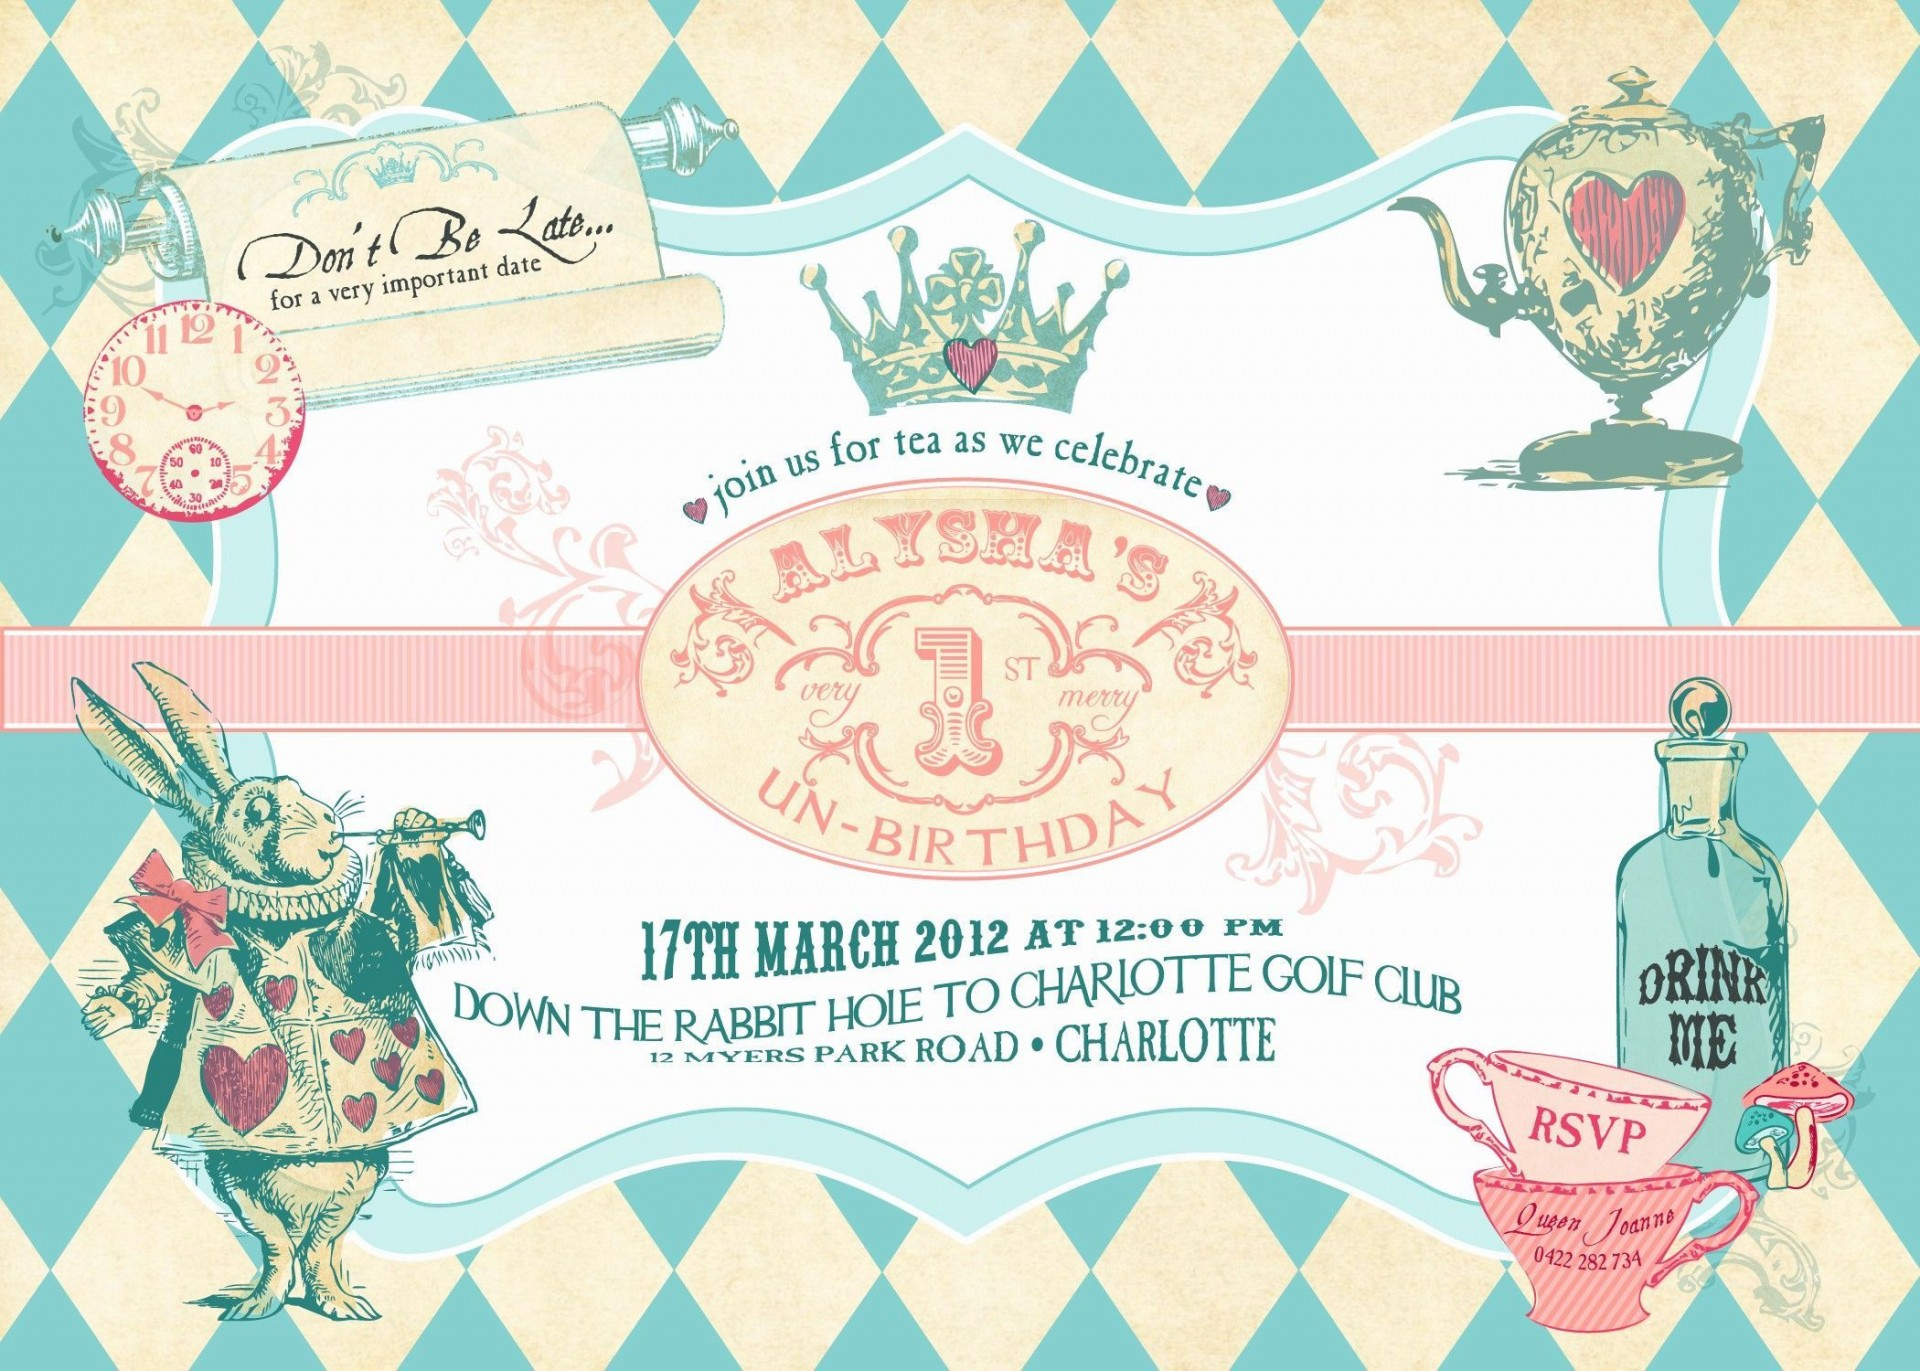 003 Staggering Alice In Wonderland Party Template High Resolution  Templates Invitation Free1920